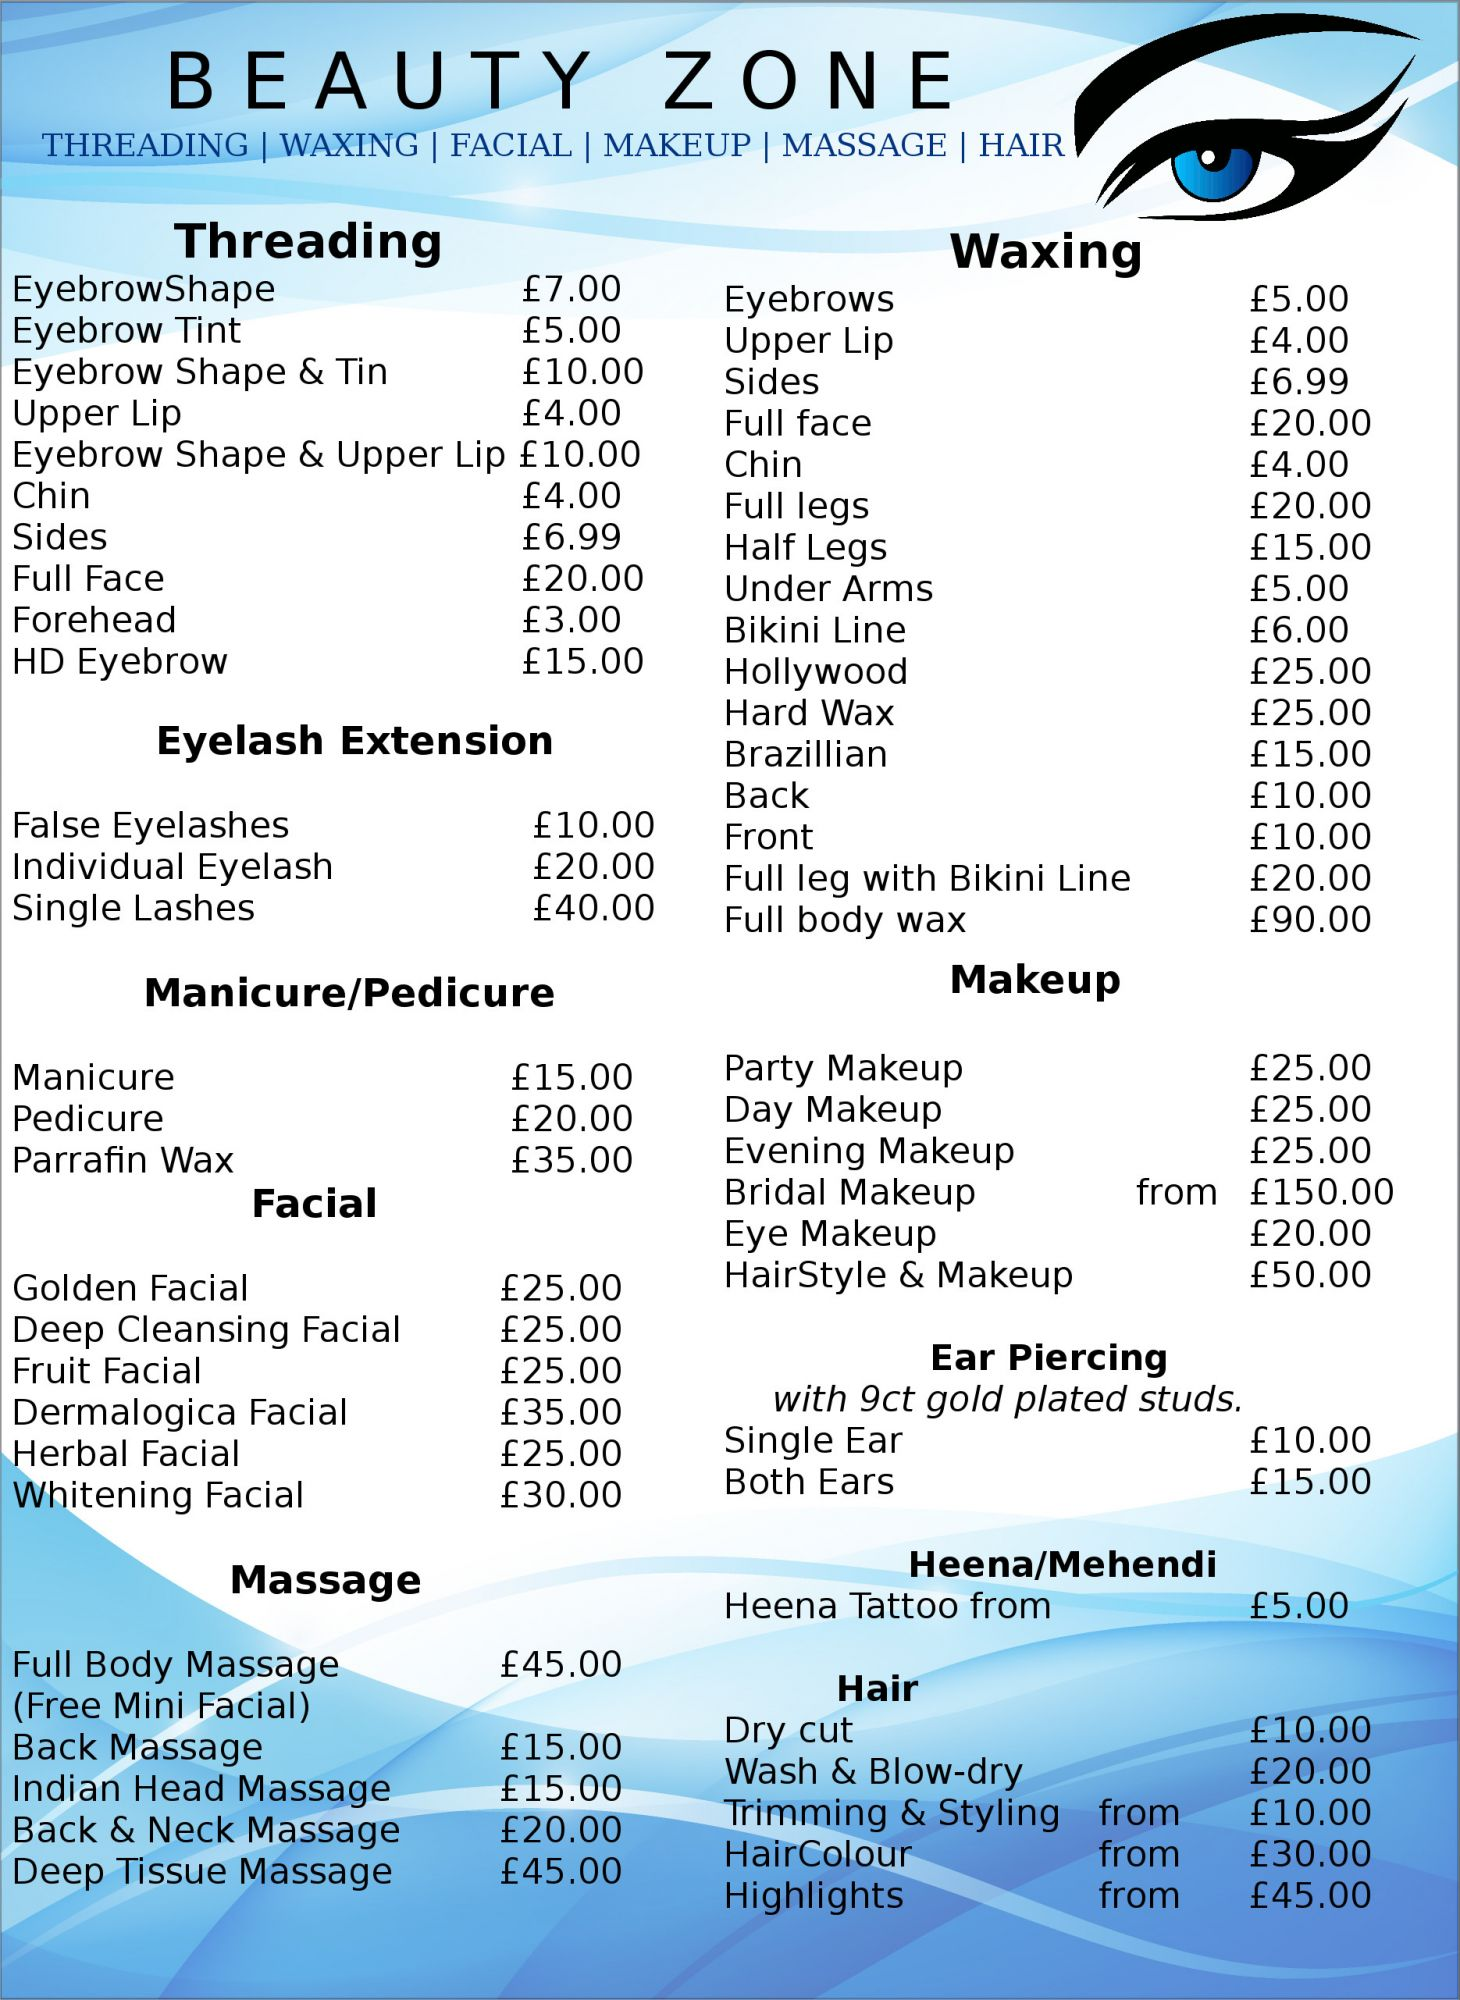 Price and Treatment list for Beauty Zone